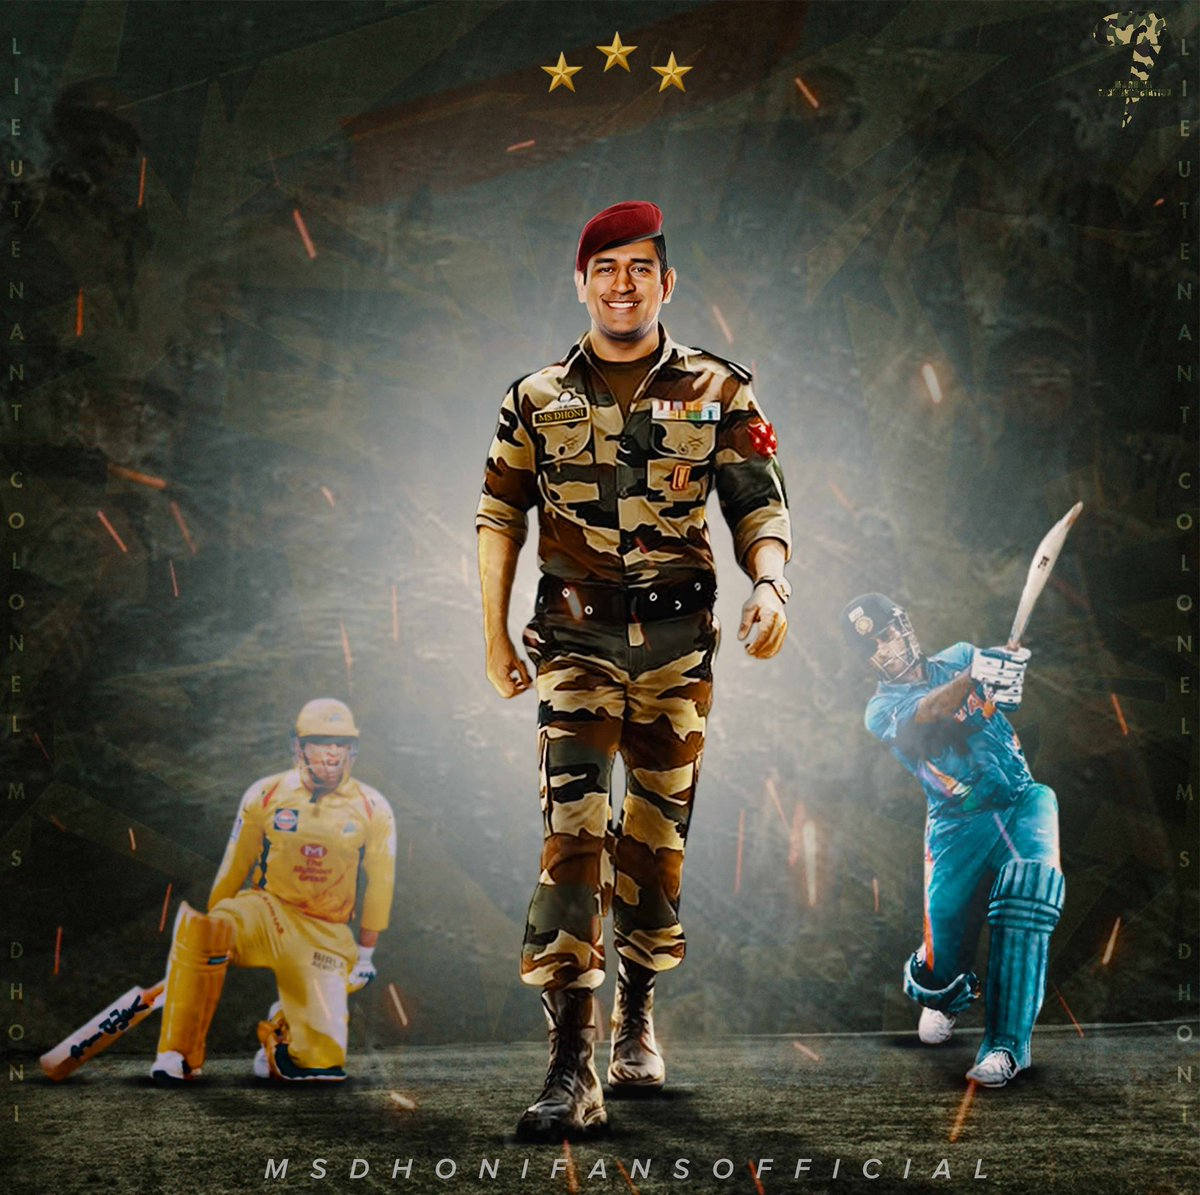 MS Dhoni Fans Official p Twitter The valiant soldier strides 1200x1195